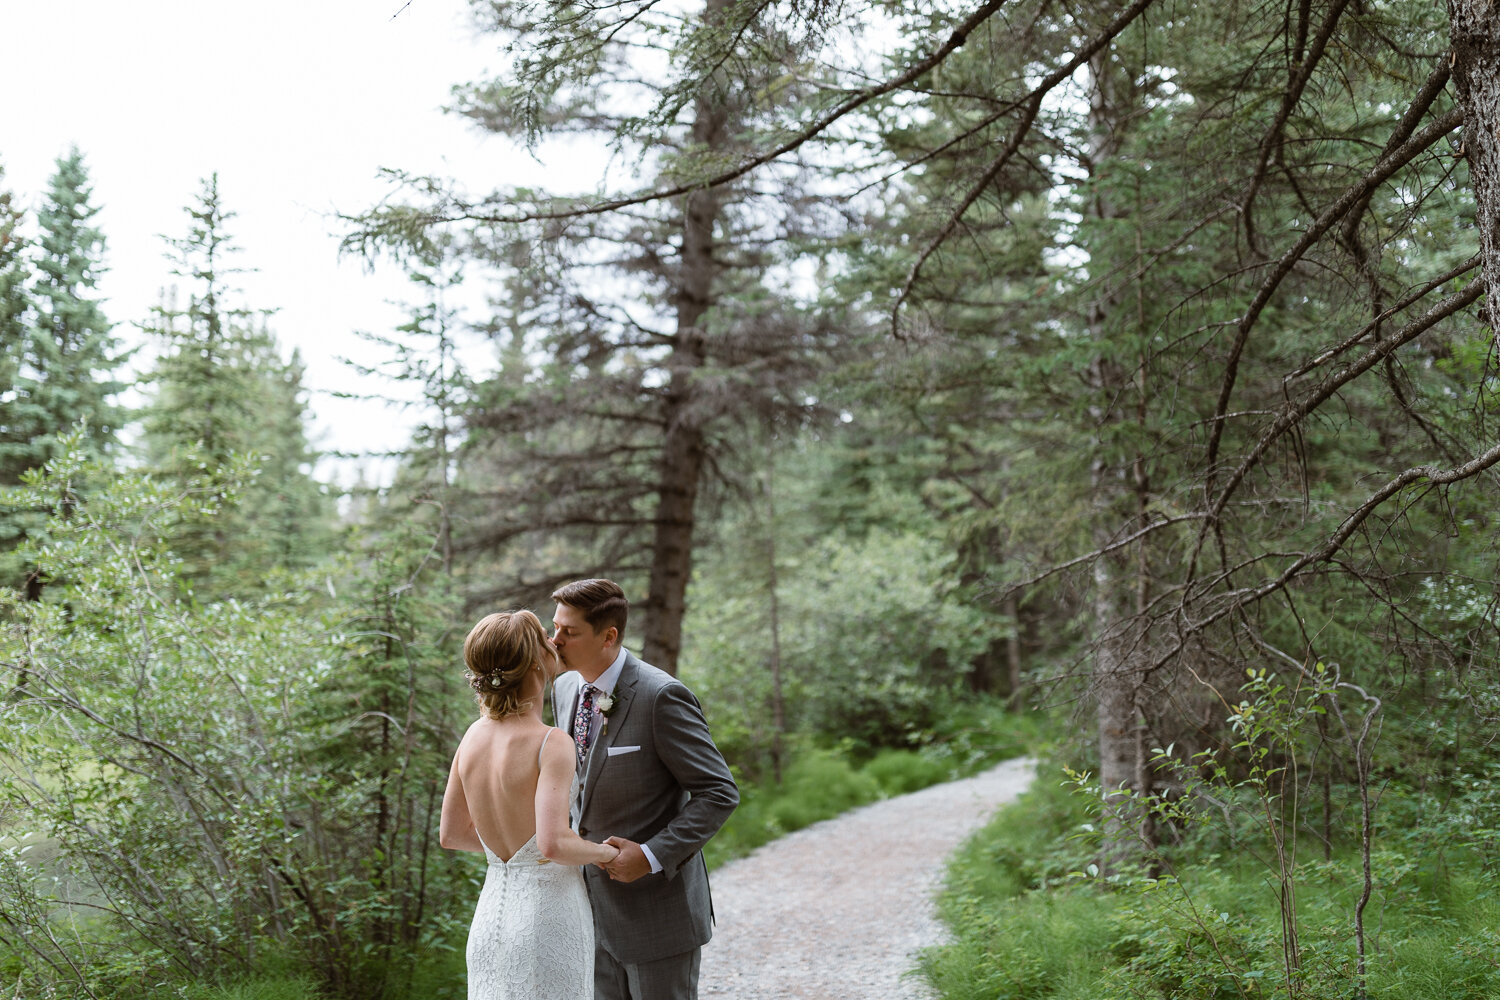 33-Canmore-Alberta-Real-Wedding-Best-Wedding-Photographers-37.JPG